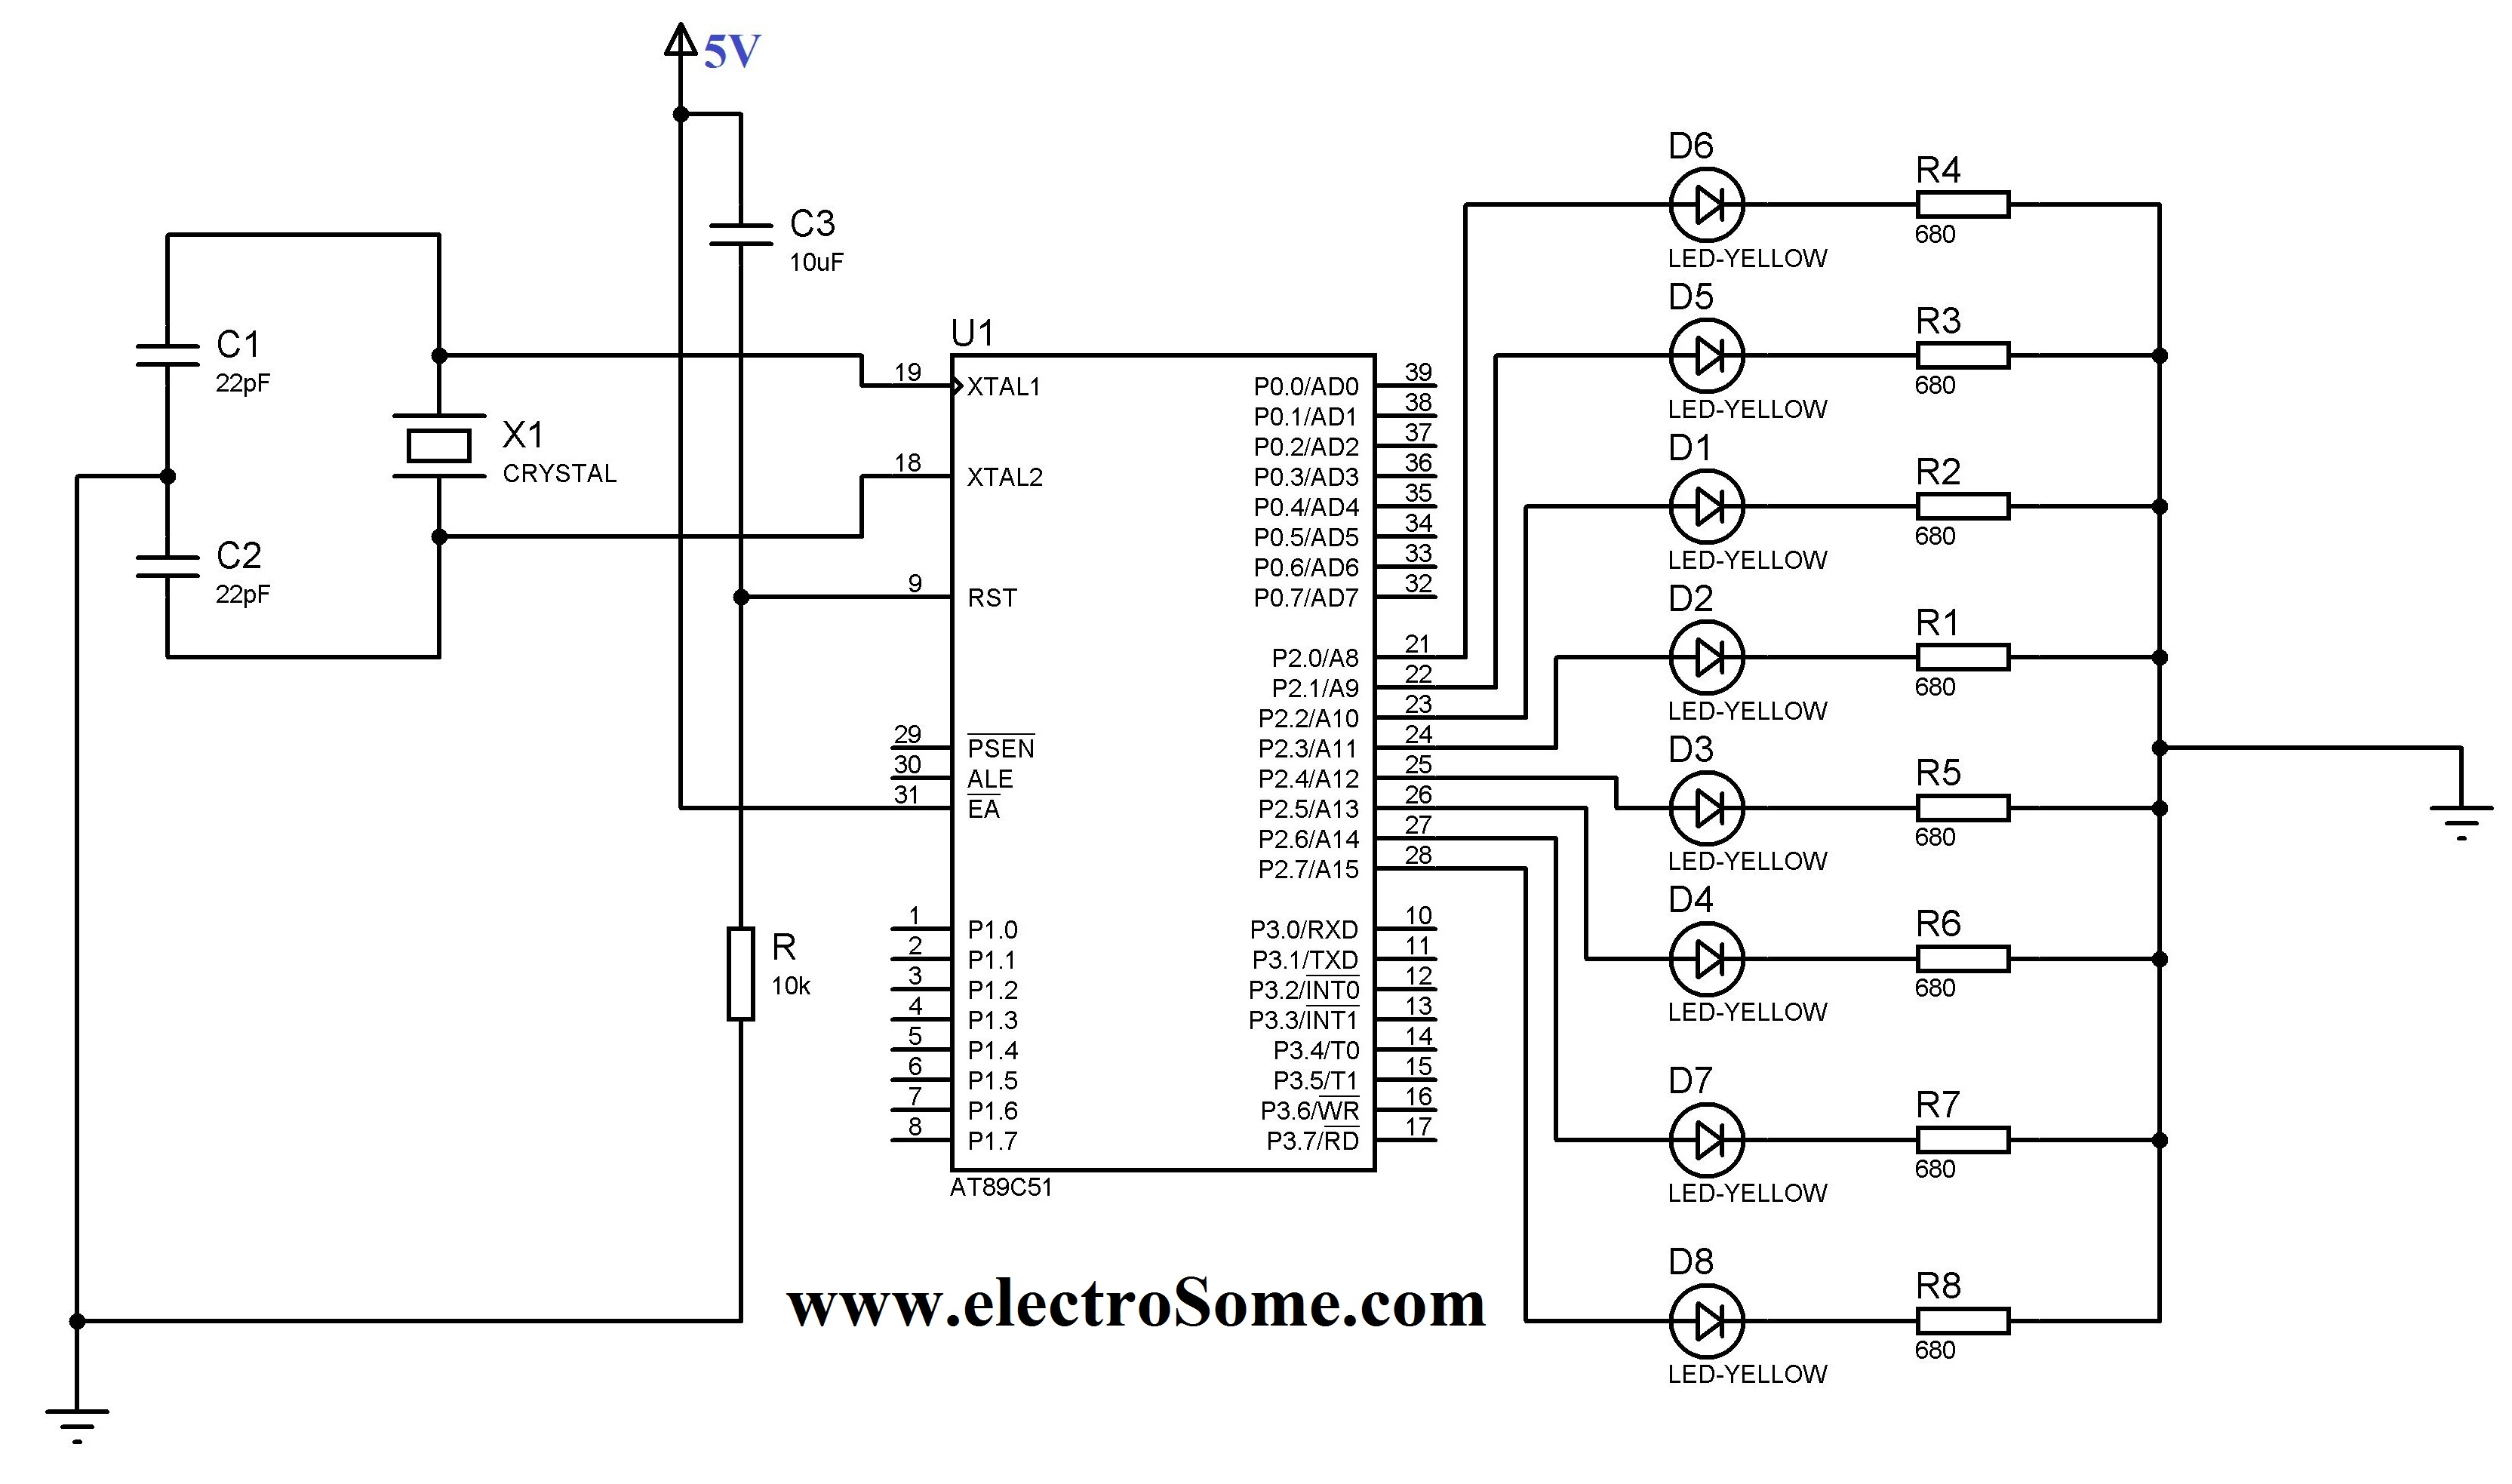 Results Page 195 About Am Searching Circuits At Quartz Crystal Sine Wave Oscillator Circuit Basiccircuit Led Blinking 8051 Microcontroller Keil C Tutorial At89c51